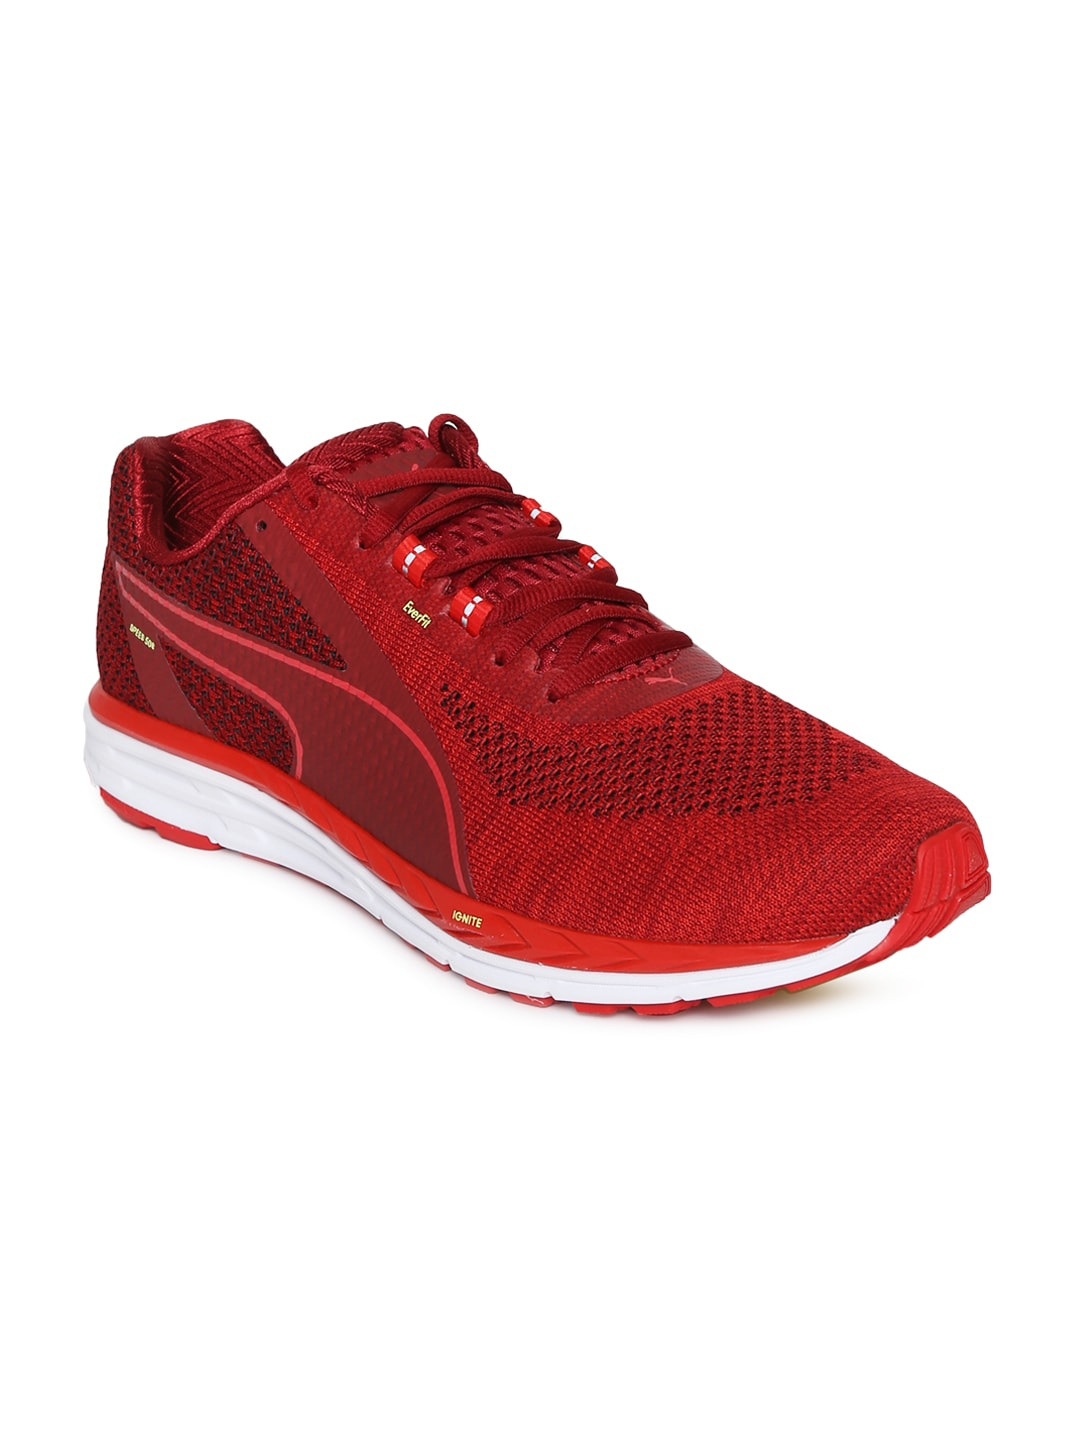 Puma Red Sport Shoes For Men - Buy Puma Red Sport Shoes For Men online in  India 52f653294